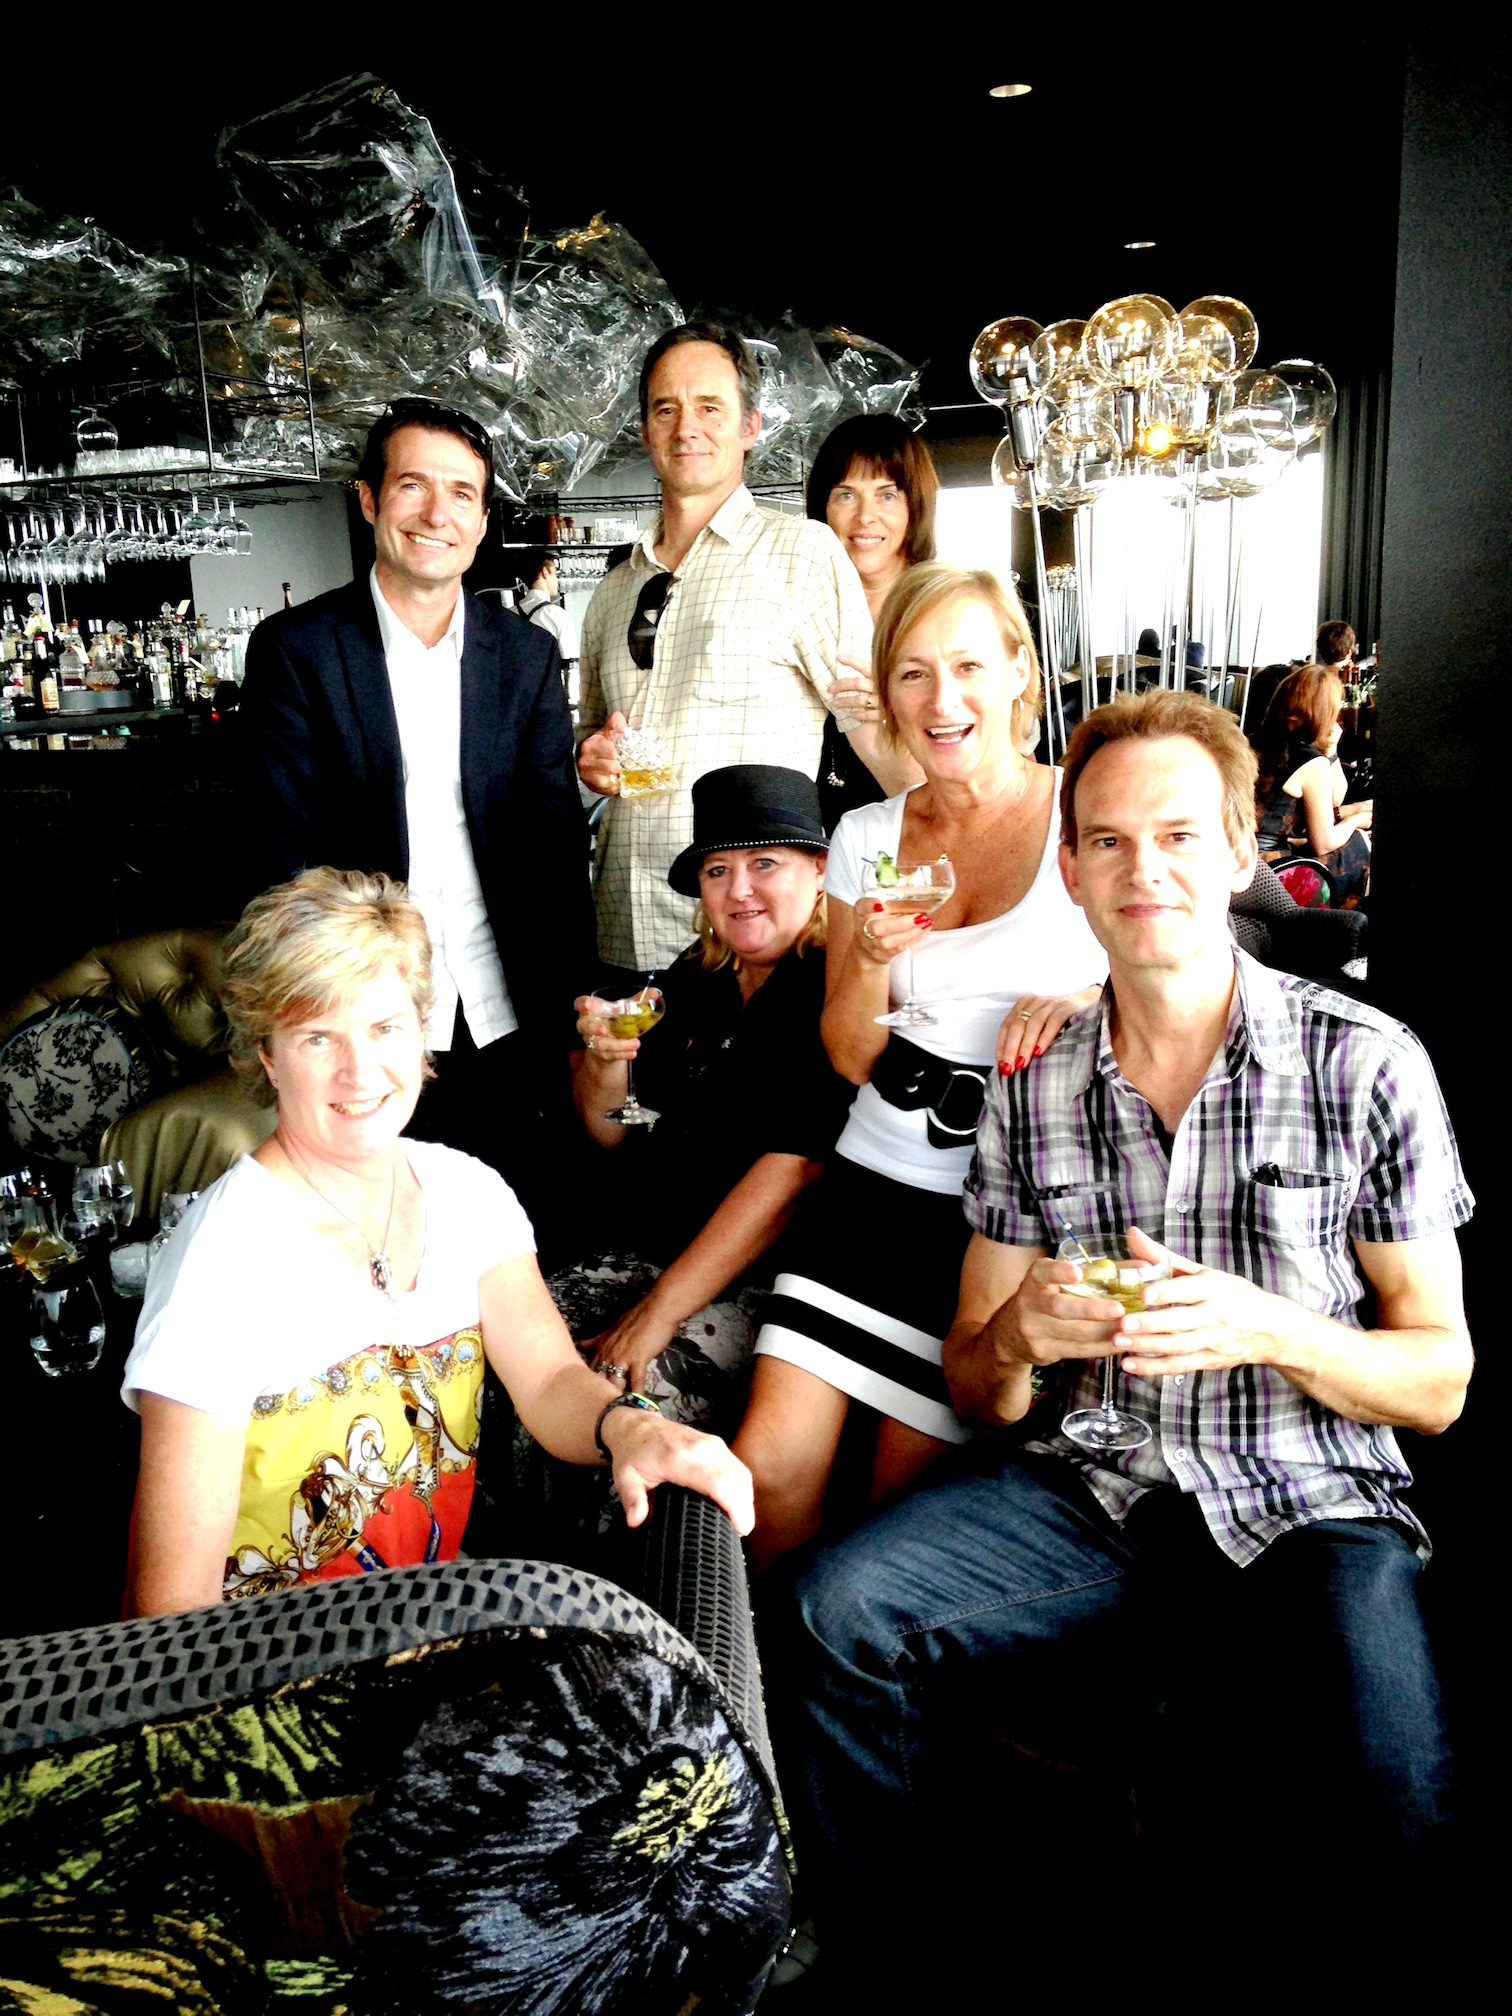 Tours Melbourne Food Tour - (Private Small Group or Couples) by Melbourne Food Experiences